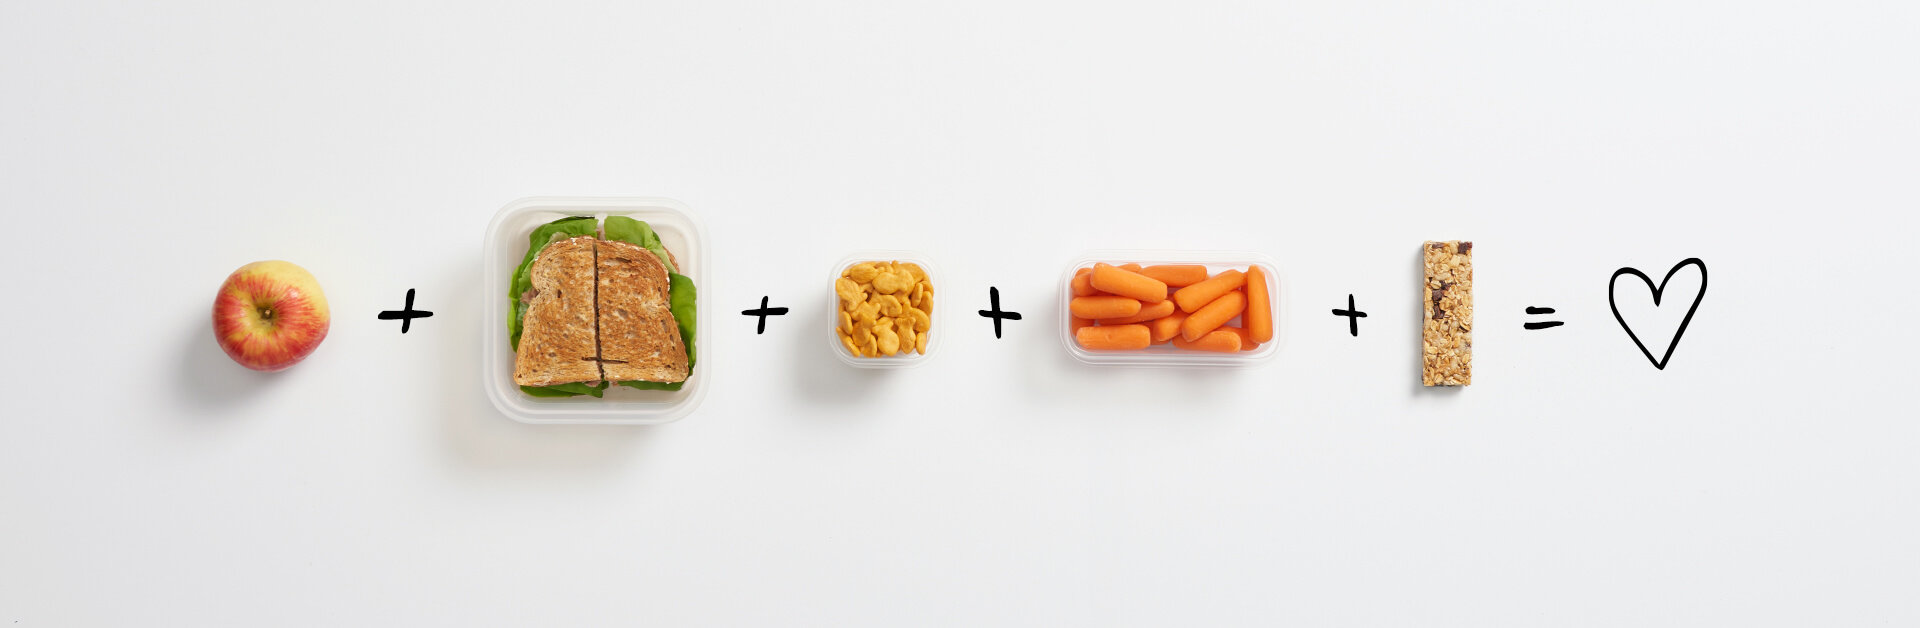 Apple, sandwich, crackers, baby carrots and a granola bar.